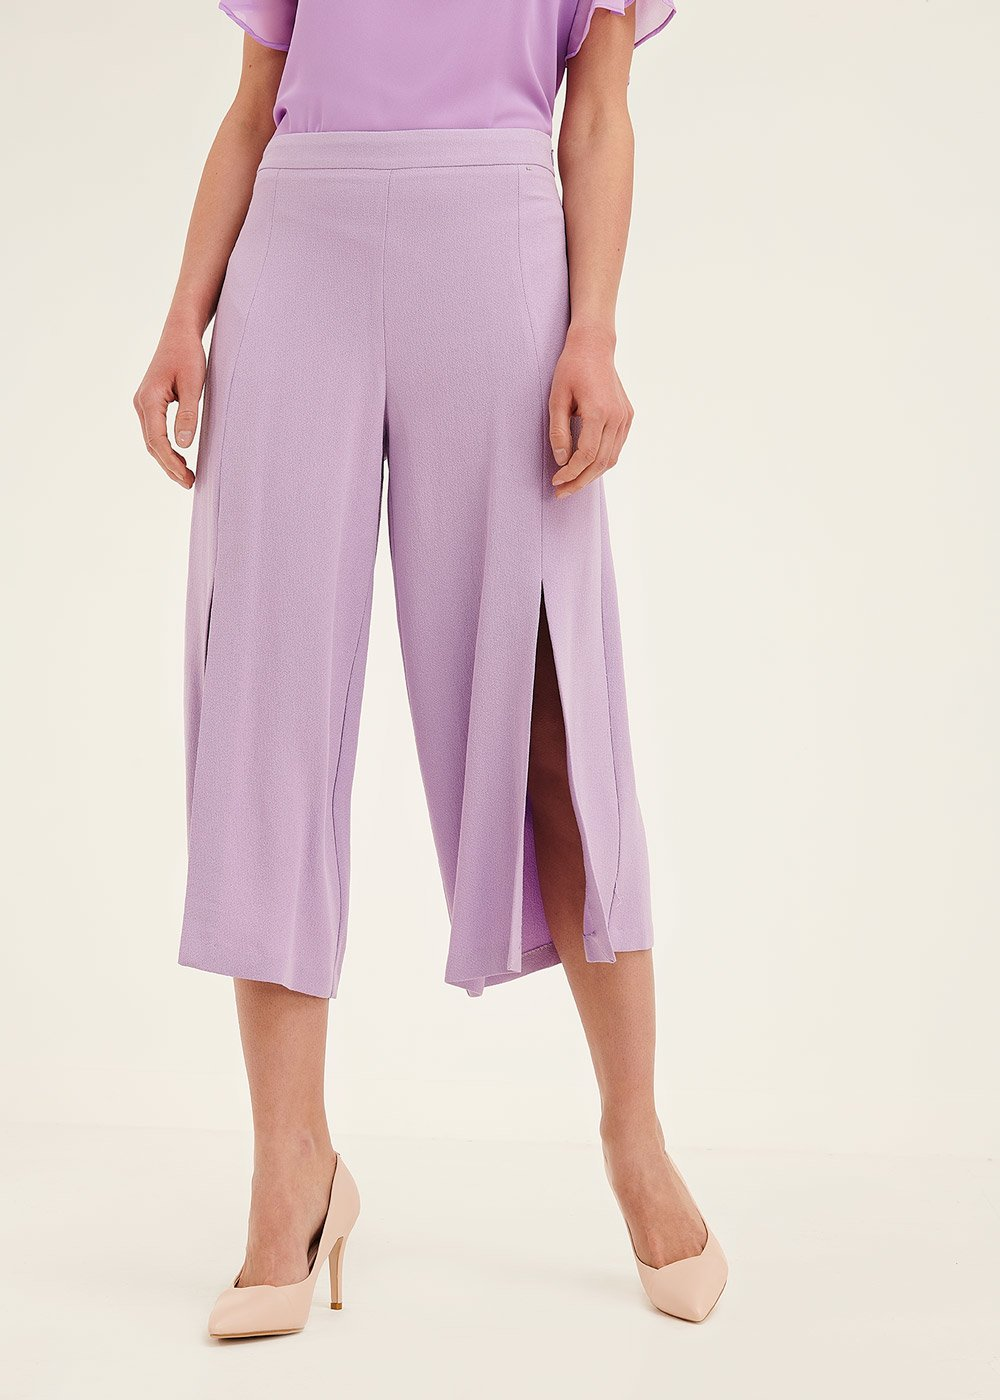 Patric short palazzo trousers - Bouganville - Woman